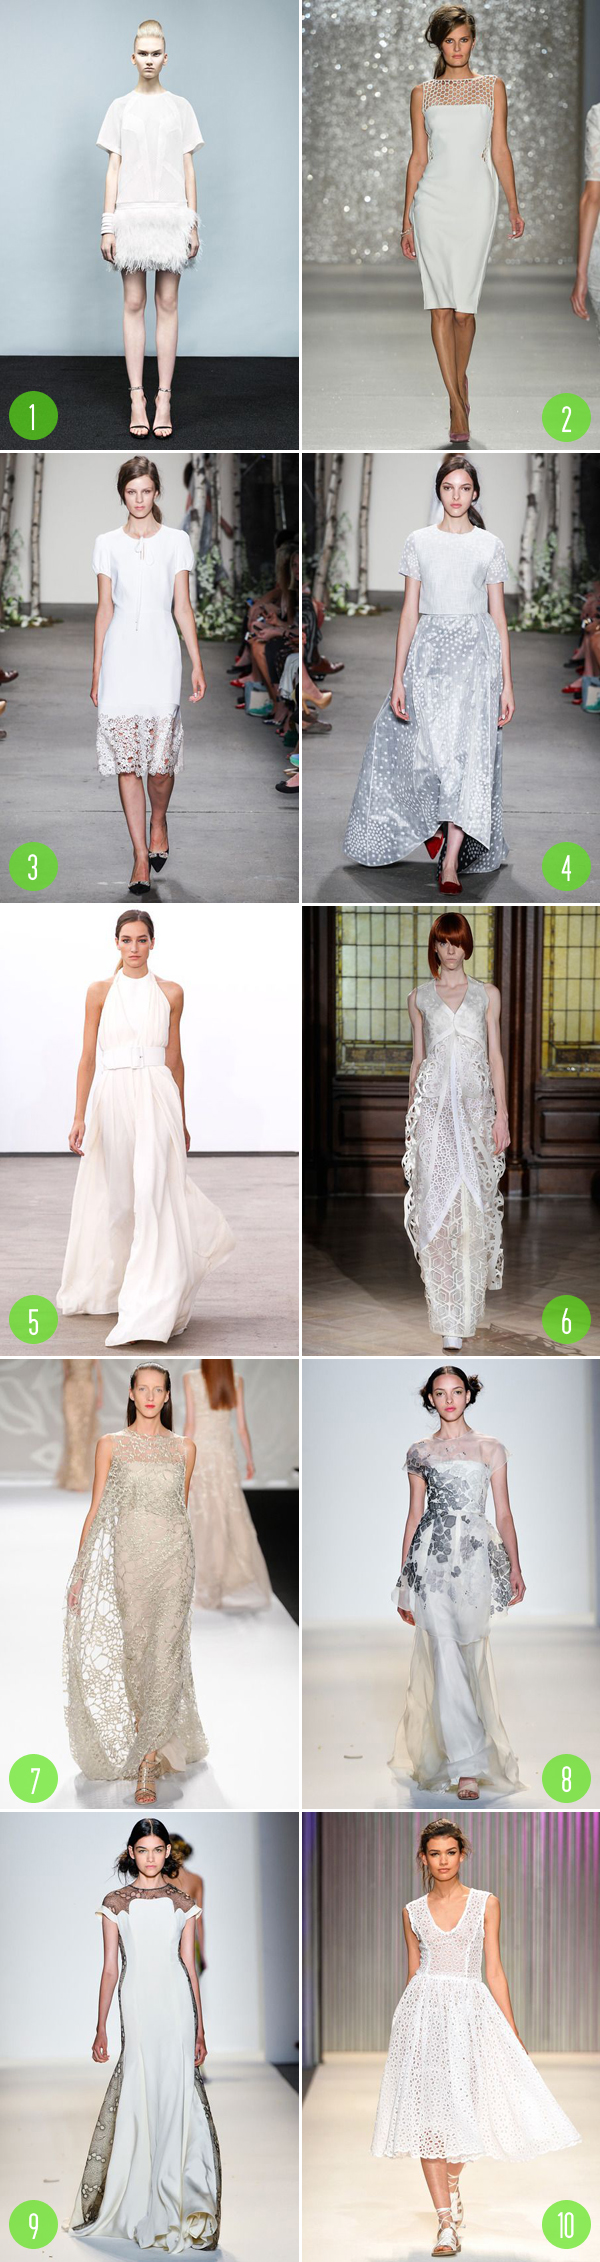 Top 10: white dresses RTW 2014